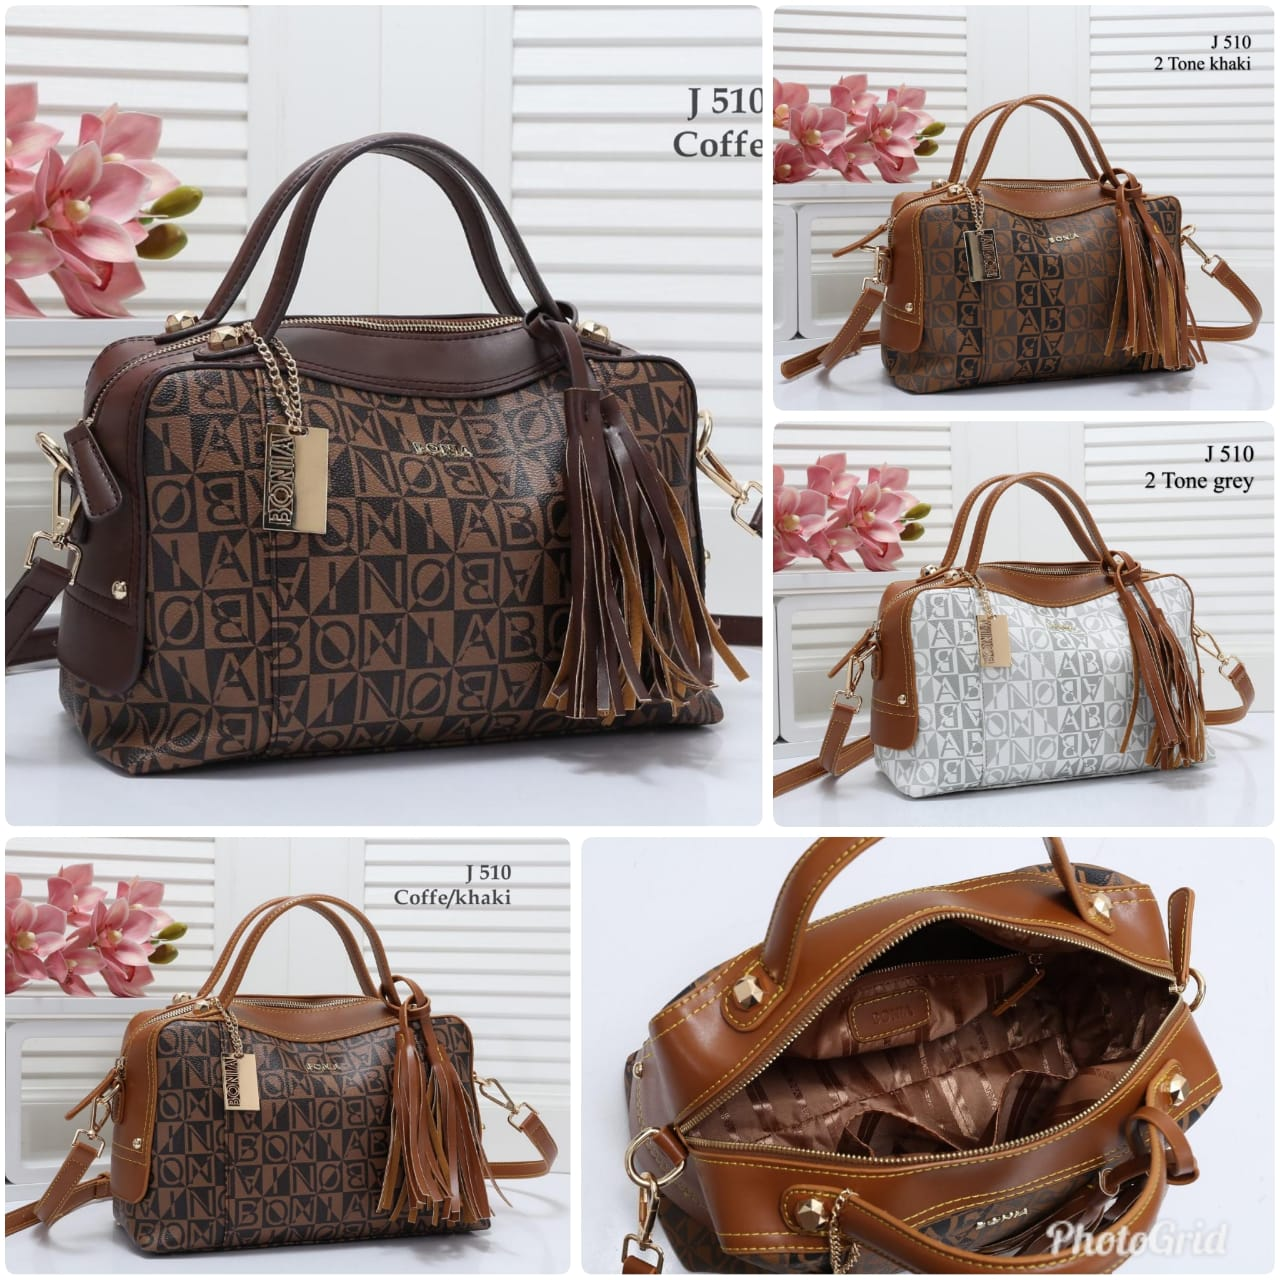 Kode GI 011 : BONIA Speedy Bag  510#B304